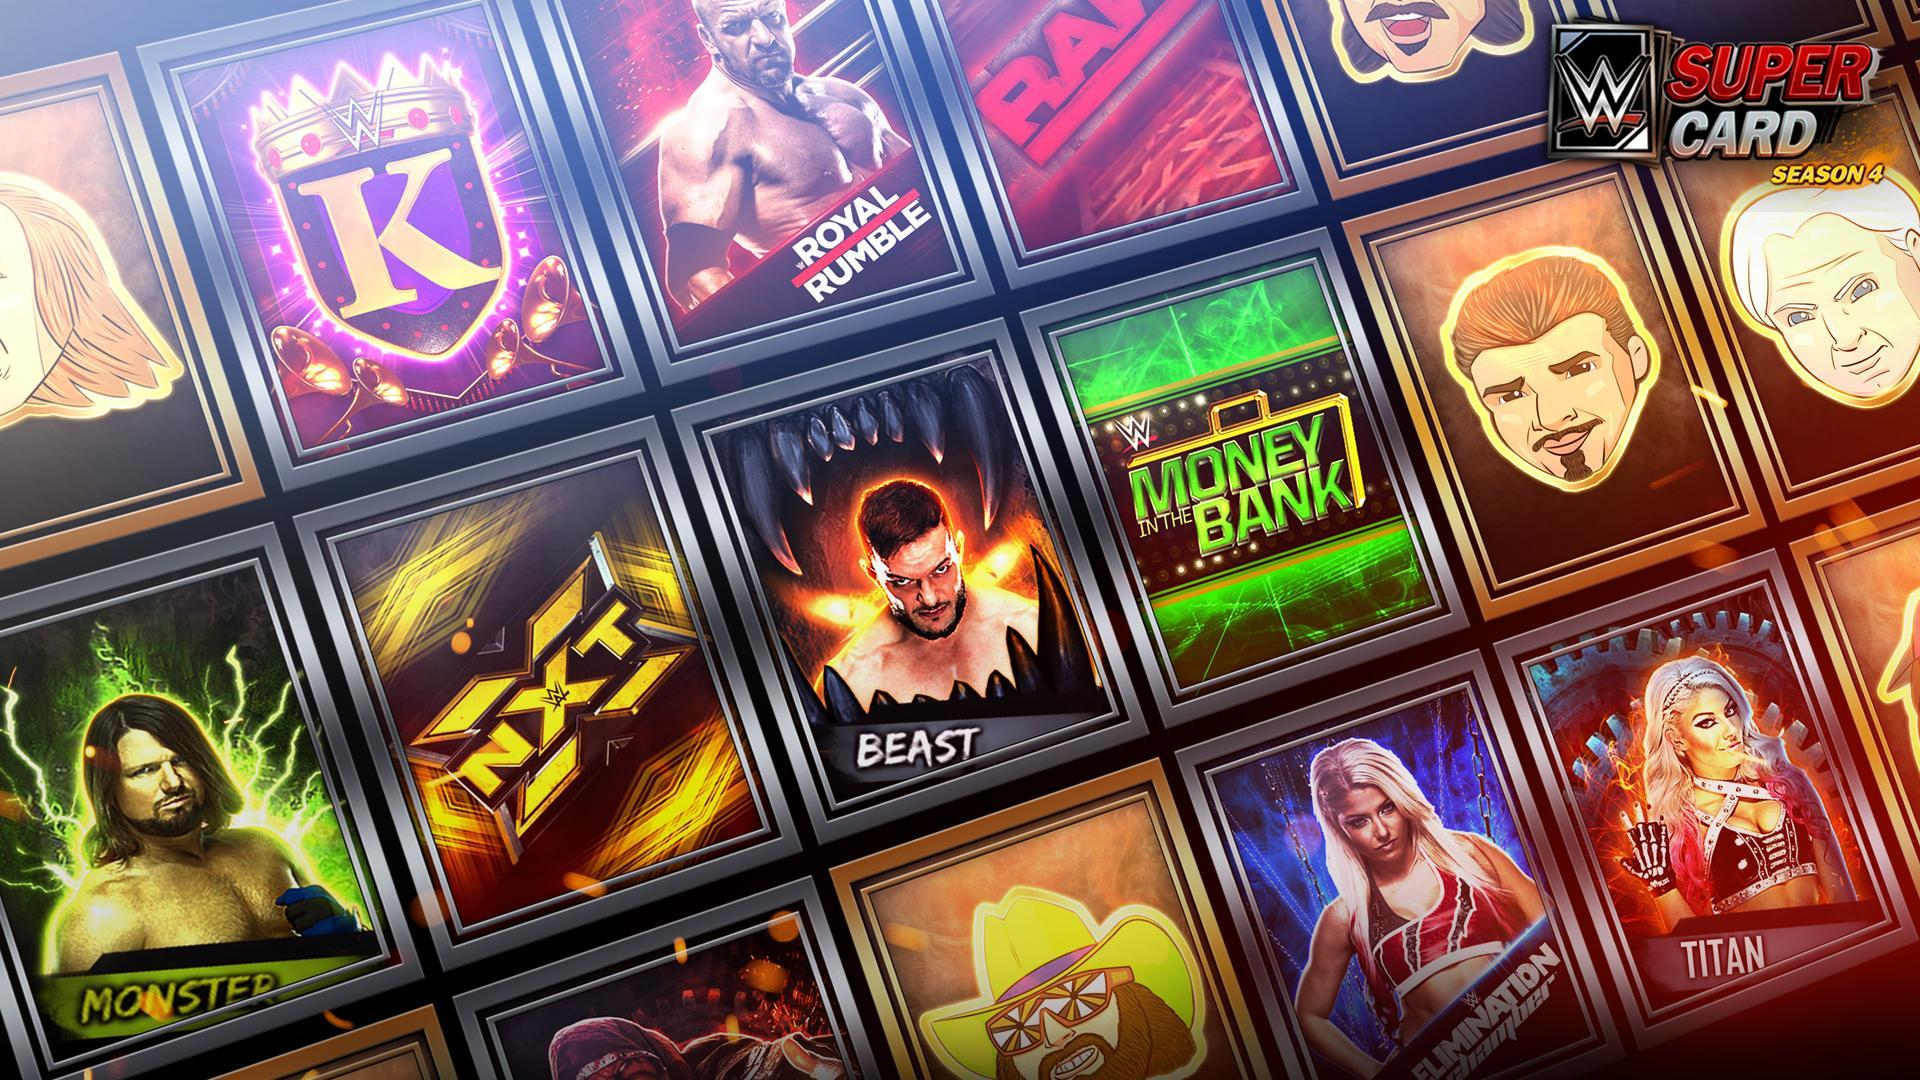 WWE SuperCard Season 4 Available Today! Features Overview, Launch Trailer & Screenshots